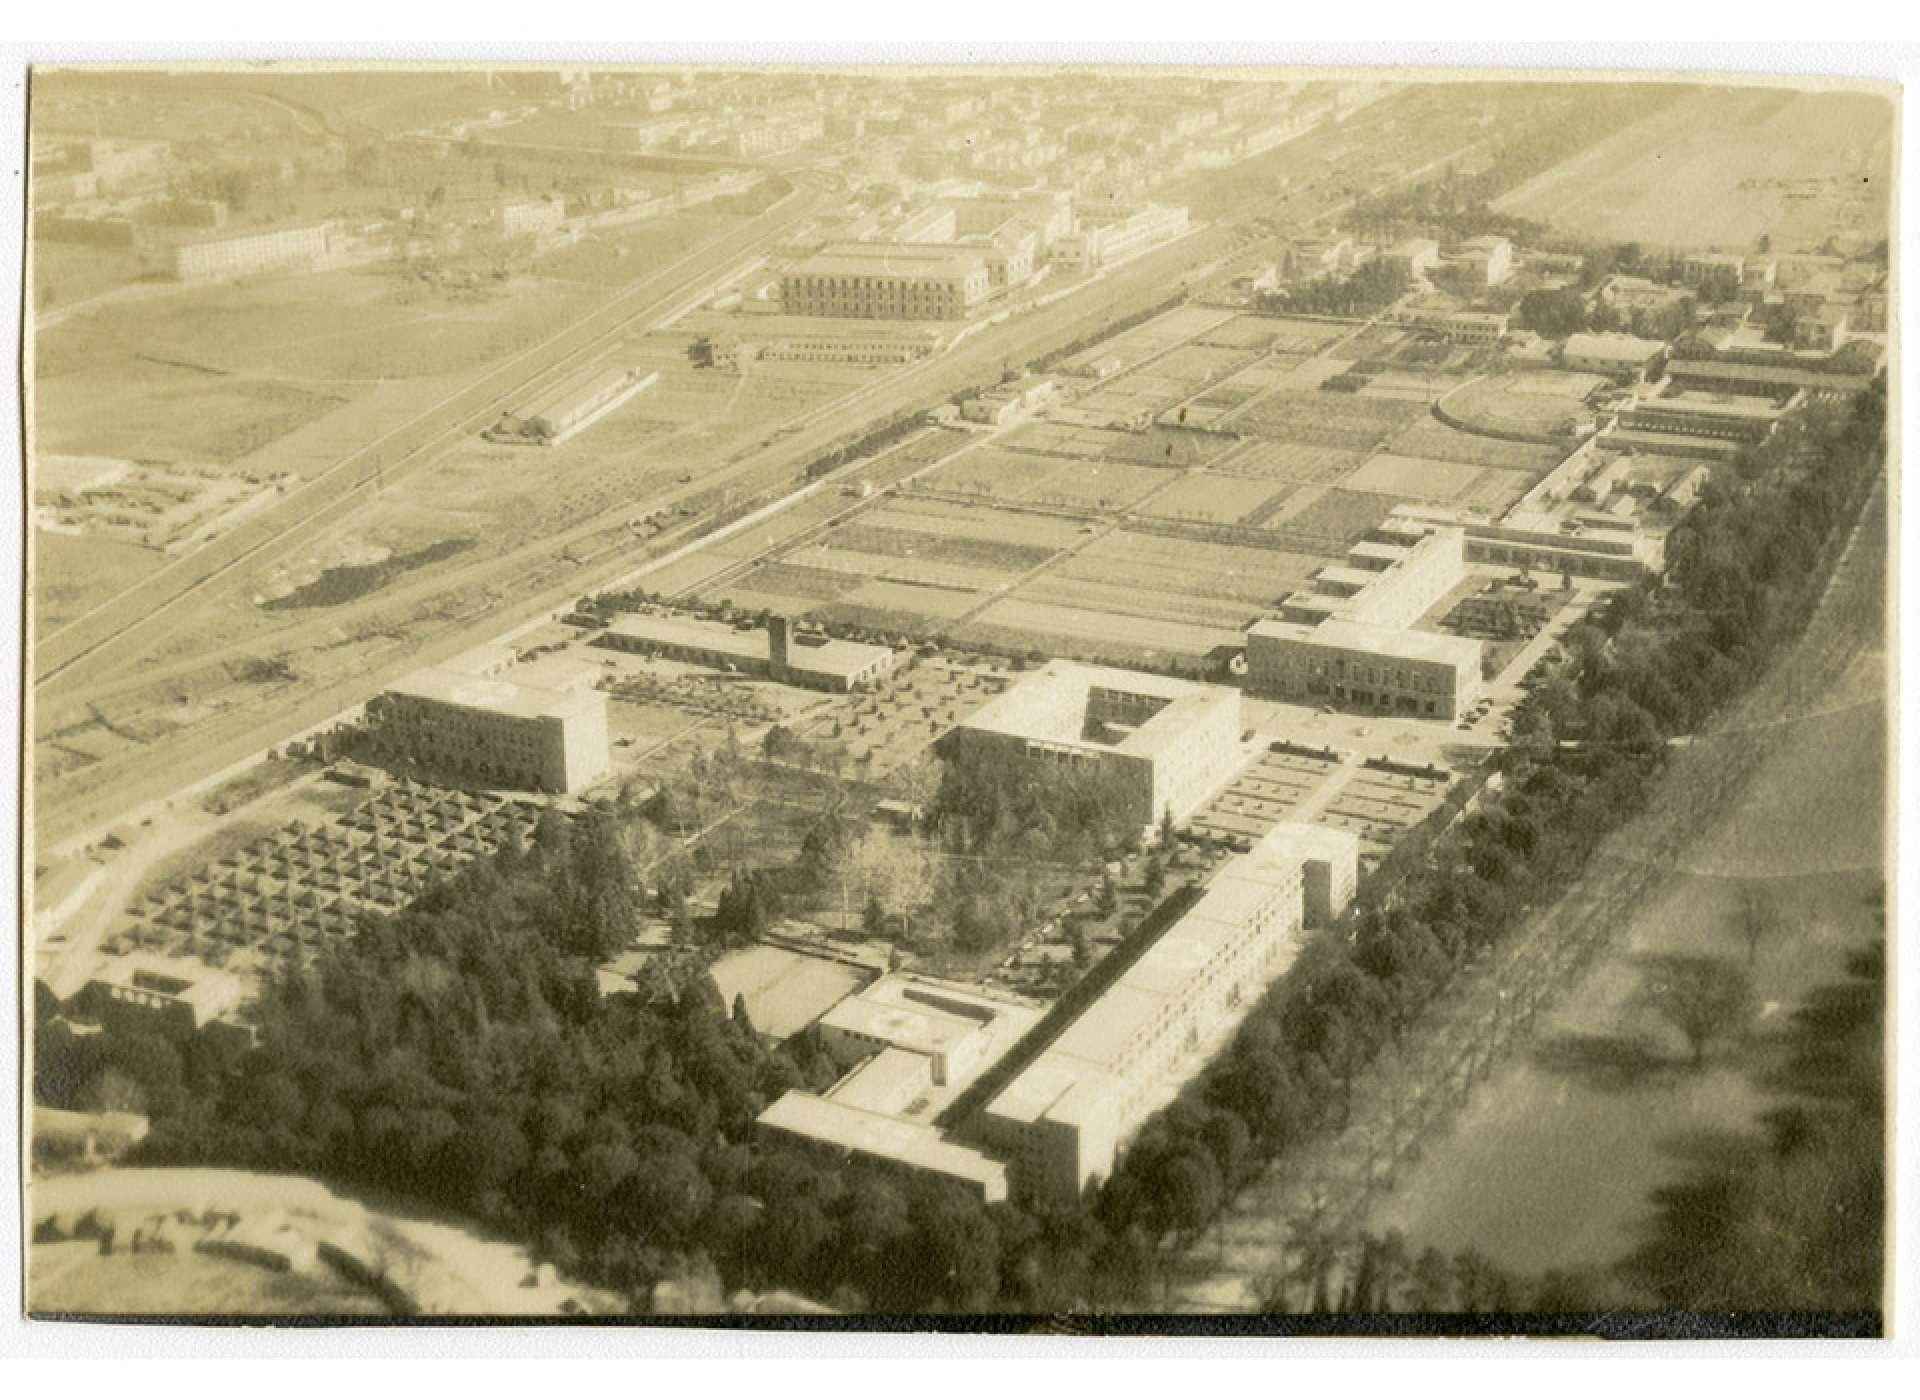 An aerial view of the former Mussolini School of Aviation, then serving as the 24th General Hospital in Florence, Italy. The National WWII Museum.